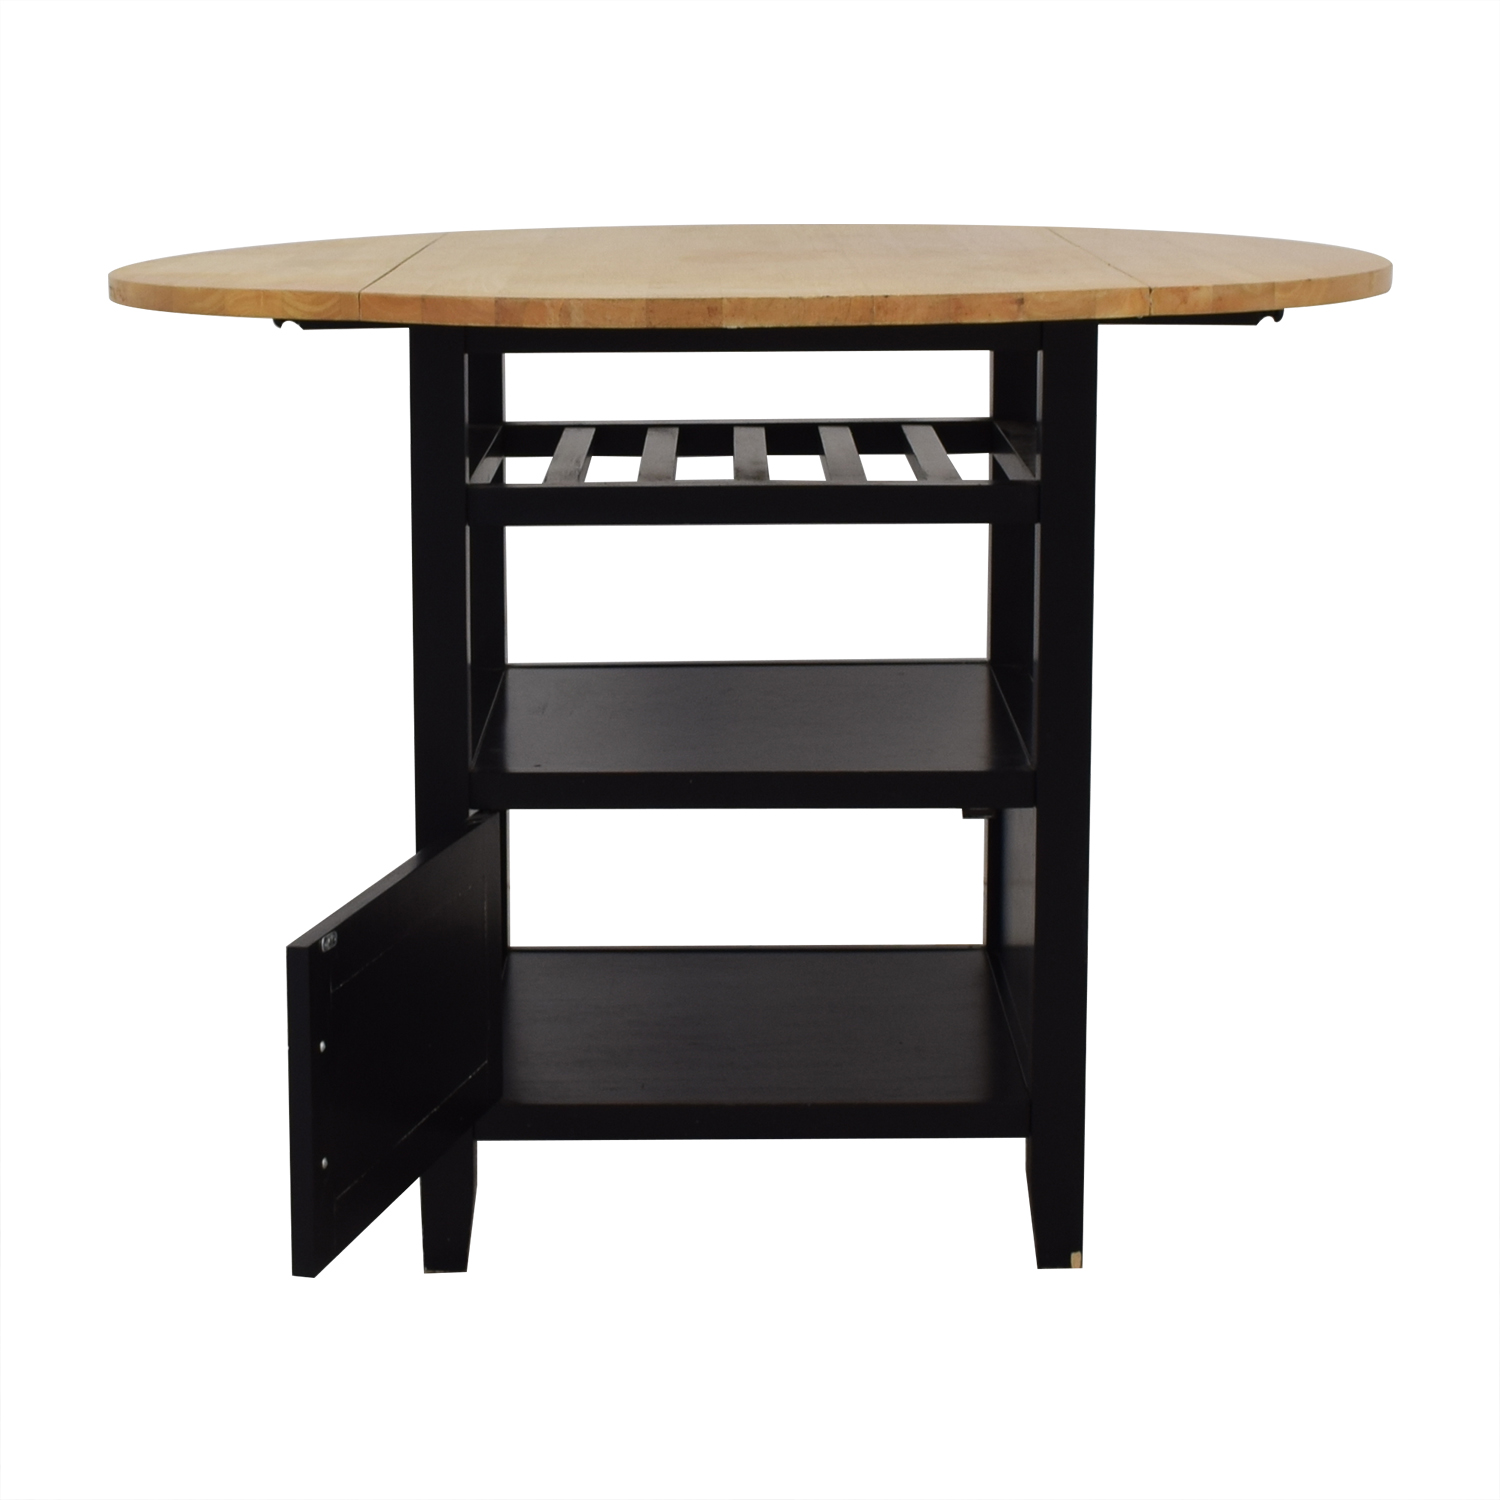 Crate & Barrel Crate & Barrel Belmont High Top Dining Table dimensions